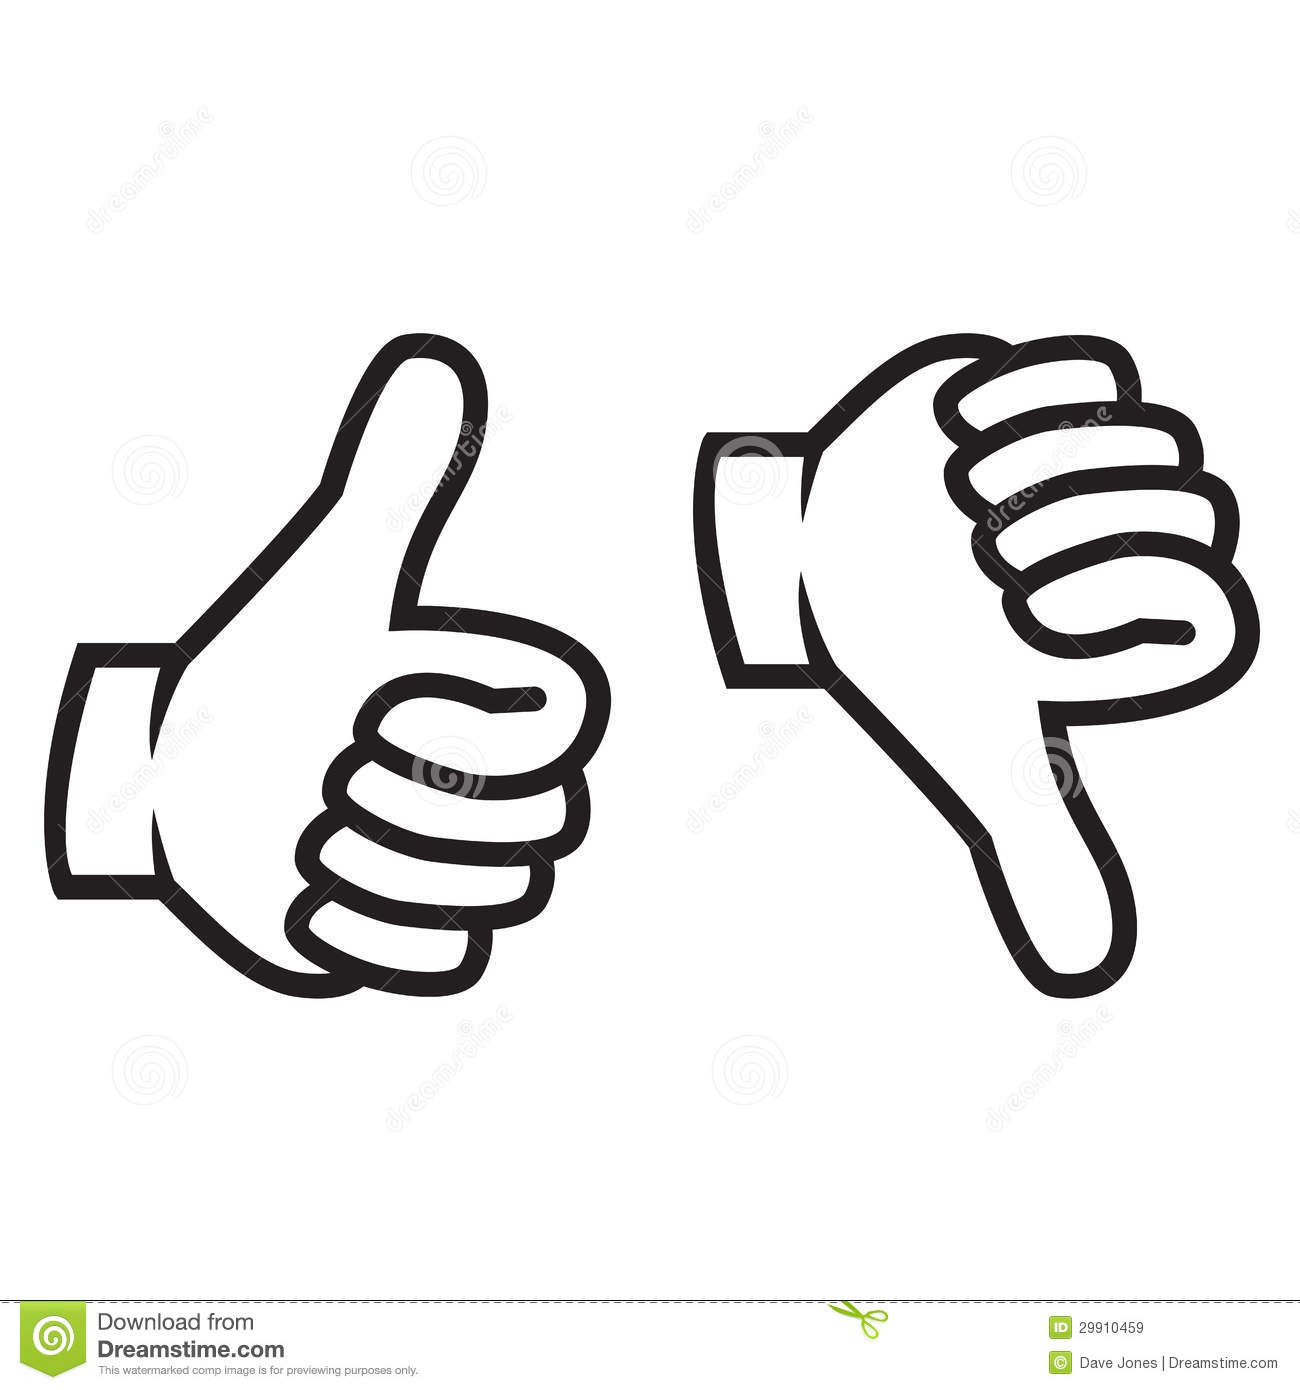 Thumbs Up Clipart Thumbs Up Down Gesture Clip Art Silhouette Black